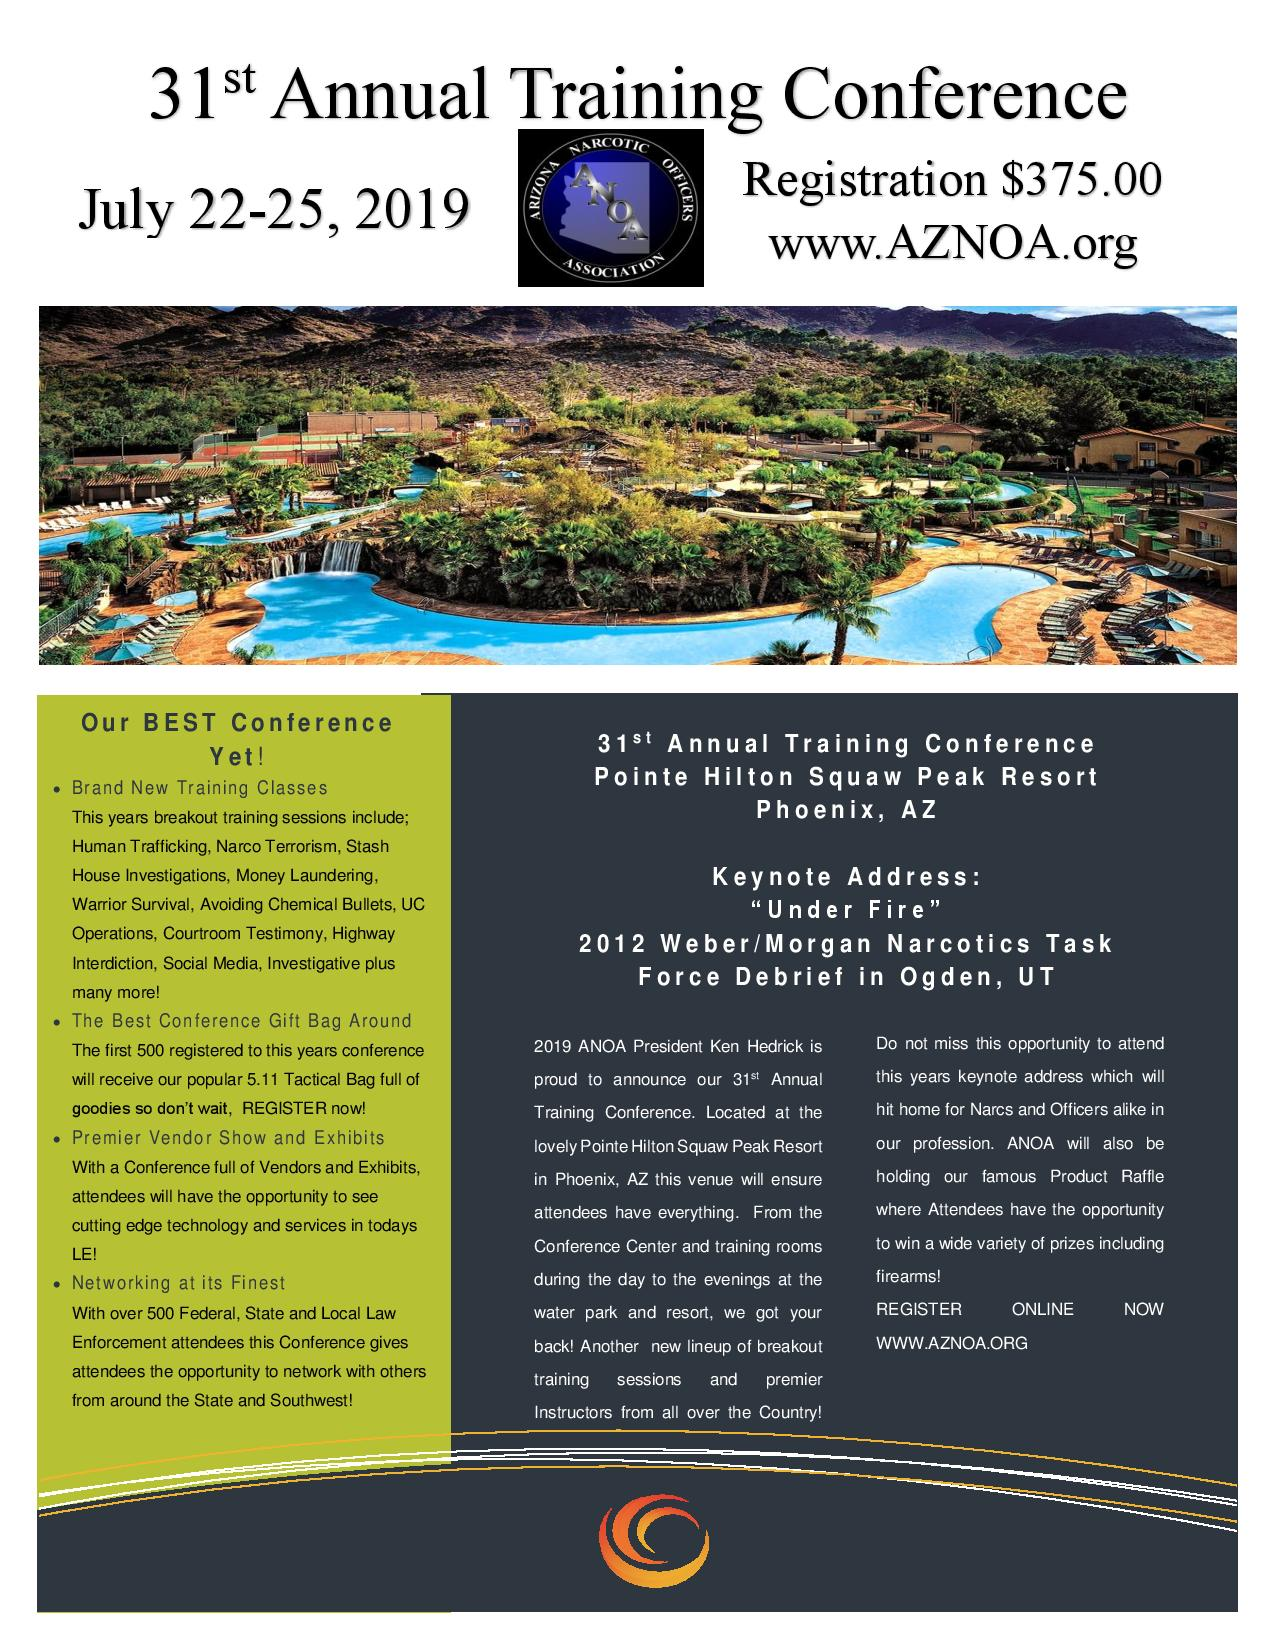 Arizona Narcotic Officers Association Annual Conference